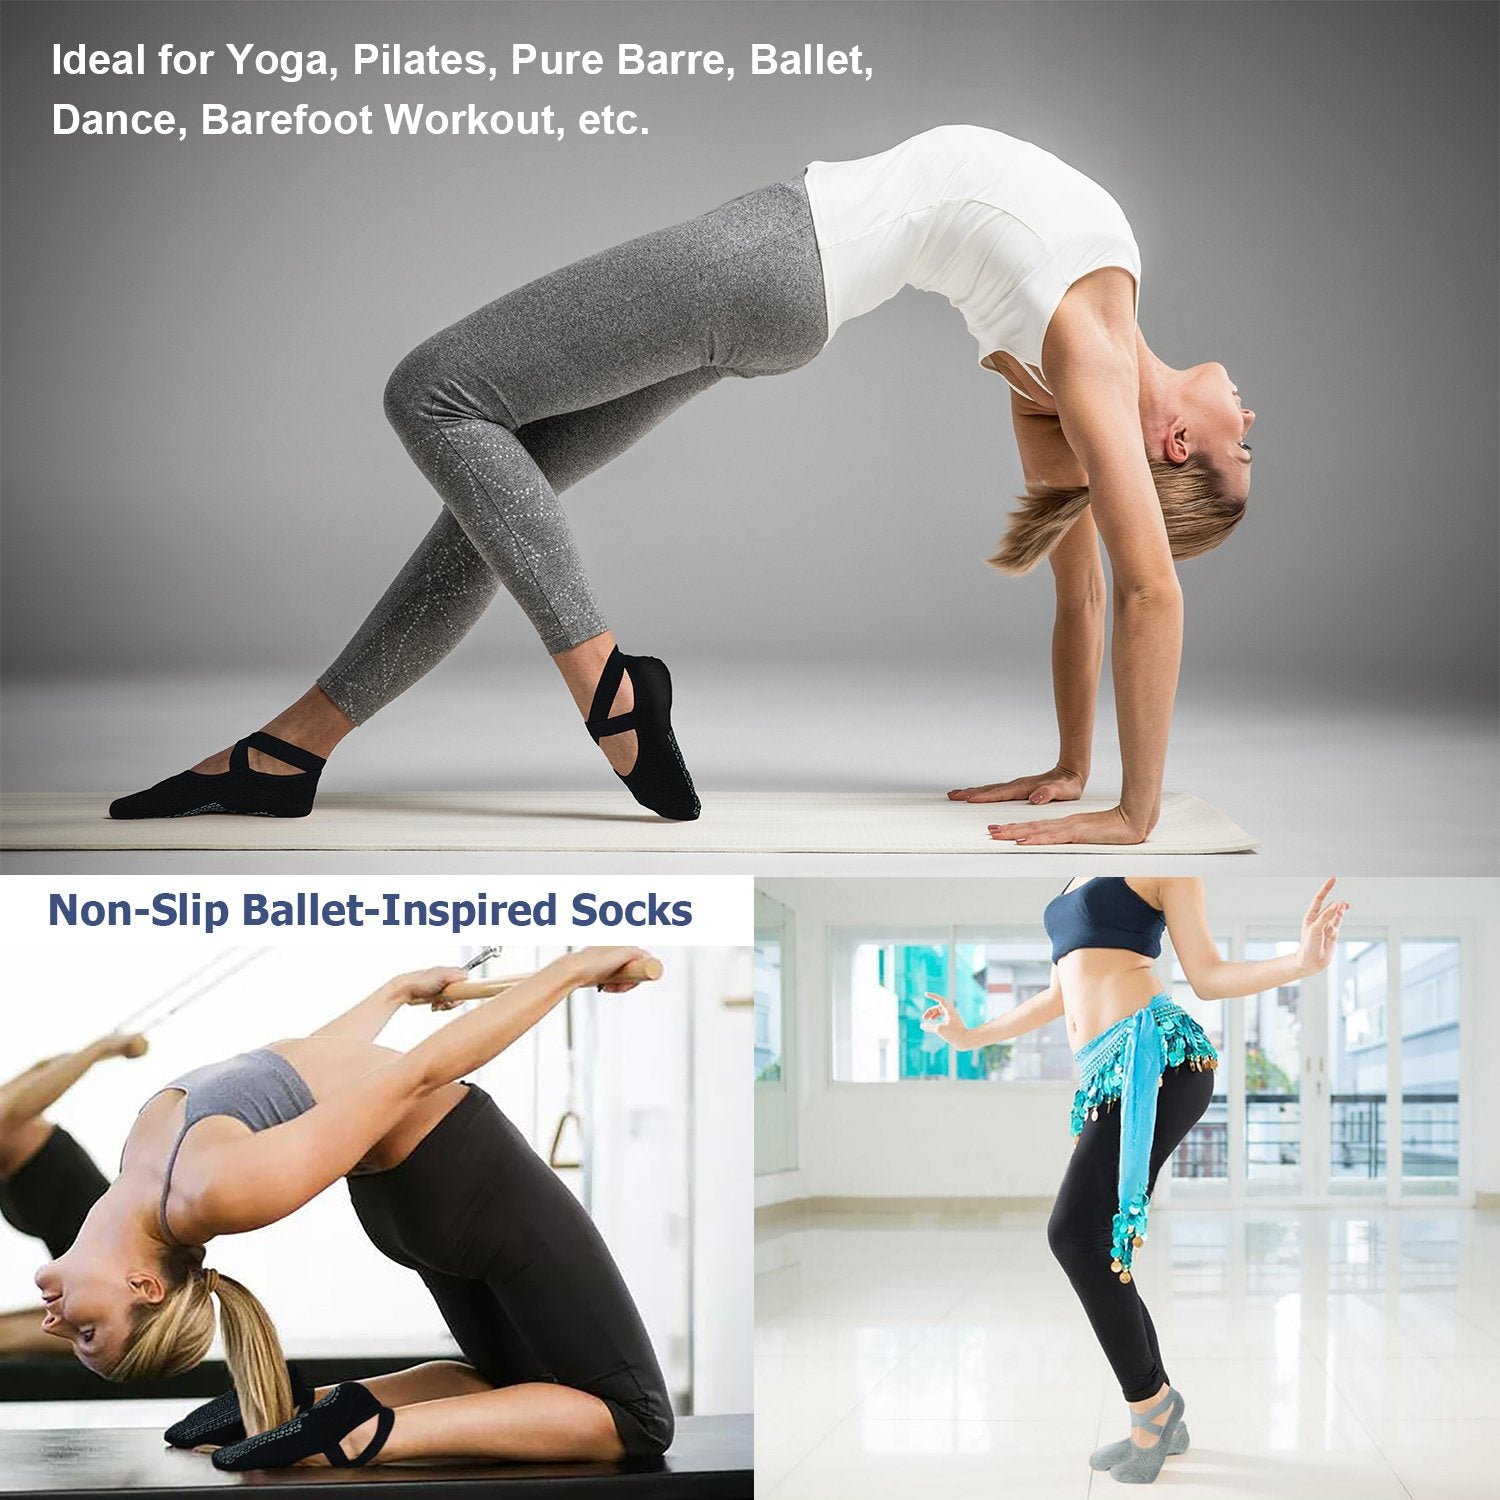 Ozaiic Yoga Socks for Women Non-Slip Grips & Straps, Ideal for Pilates, Pure Barre, Ballet, Dance, Barefoot Workout(click for sizes) - Ctfitnesswear